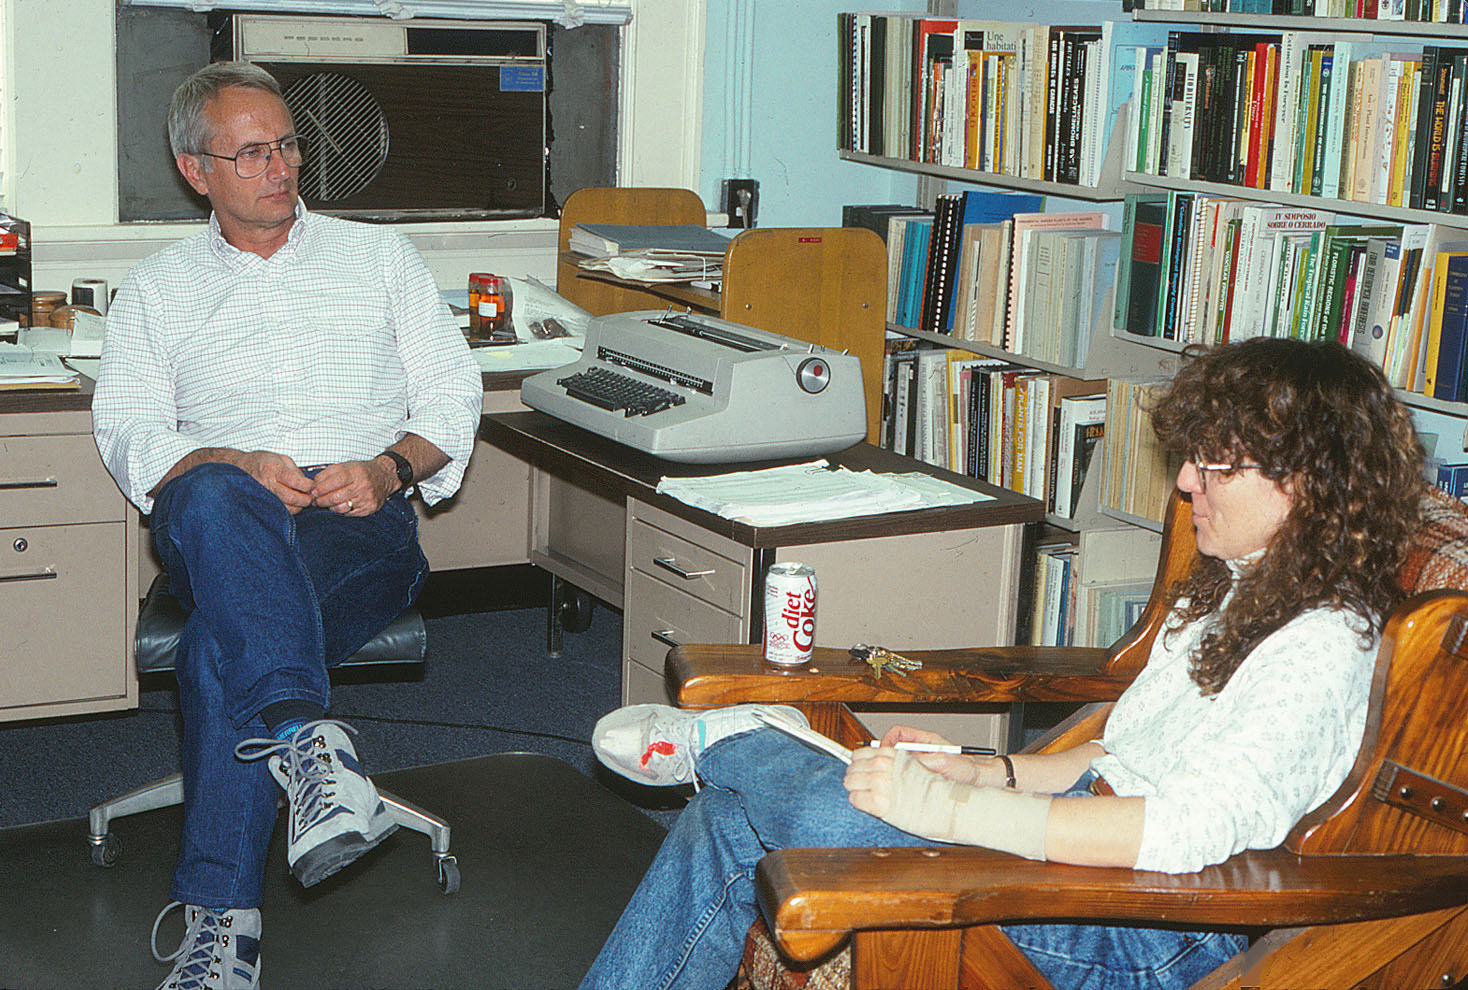 Scott A. Mori and Amy Litt in 1993. Photo by C. A. Gracie.